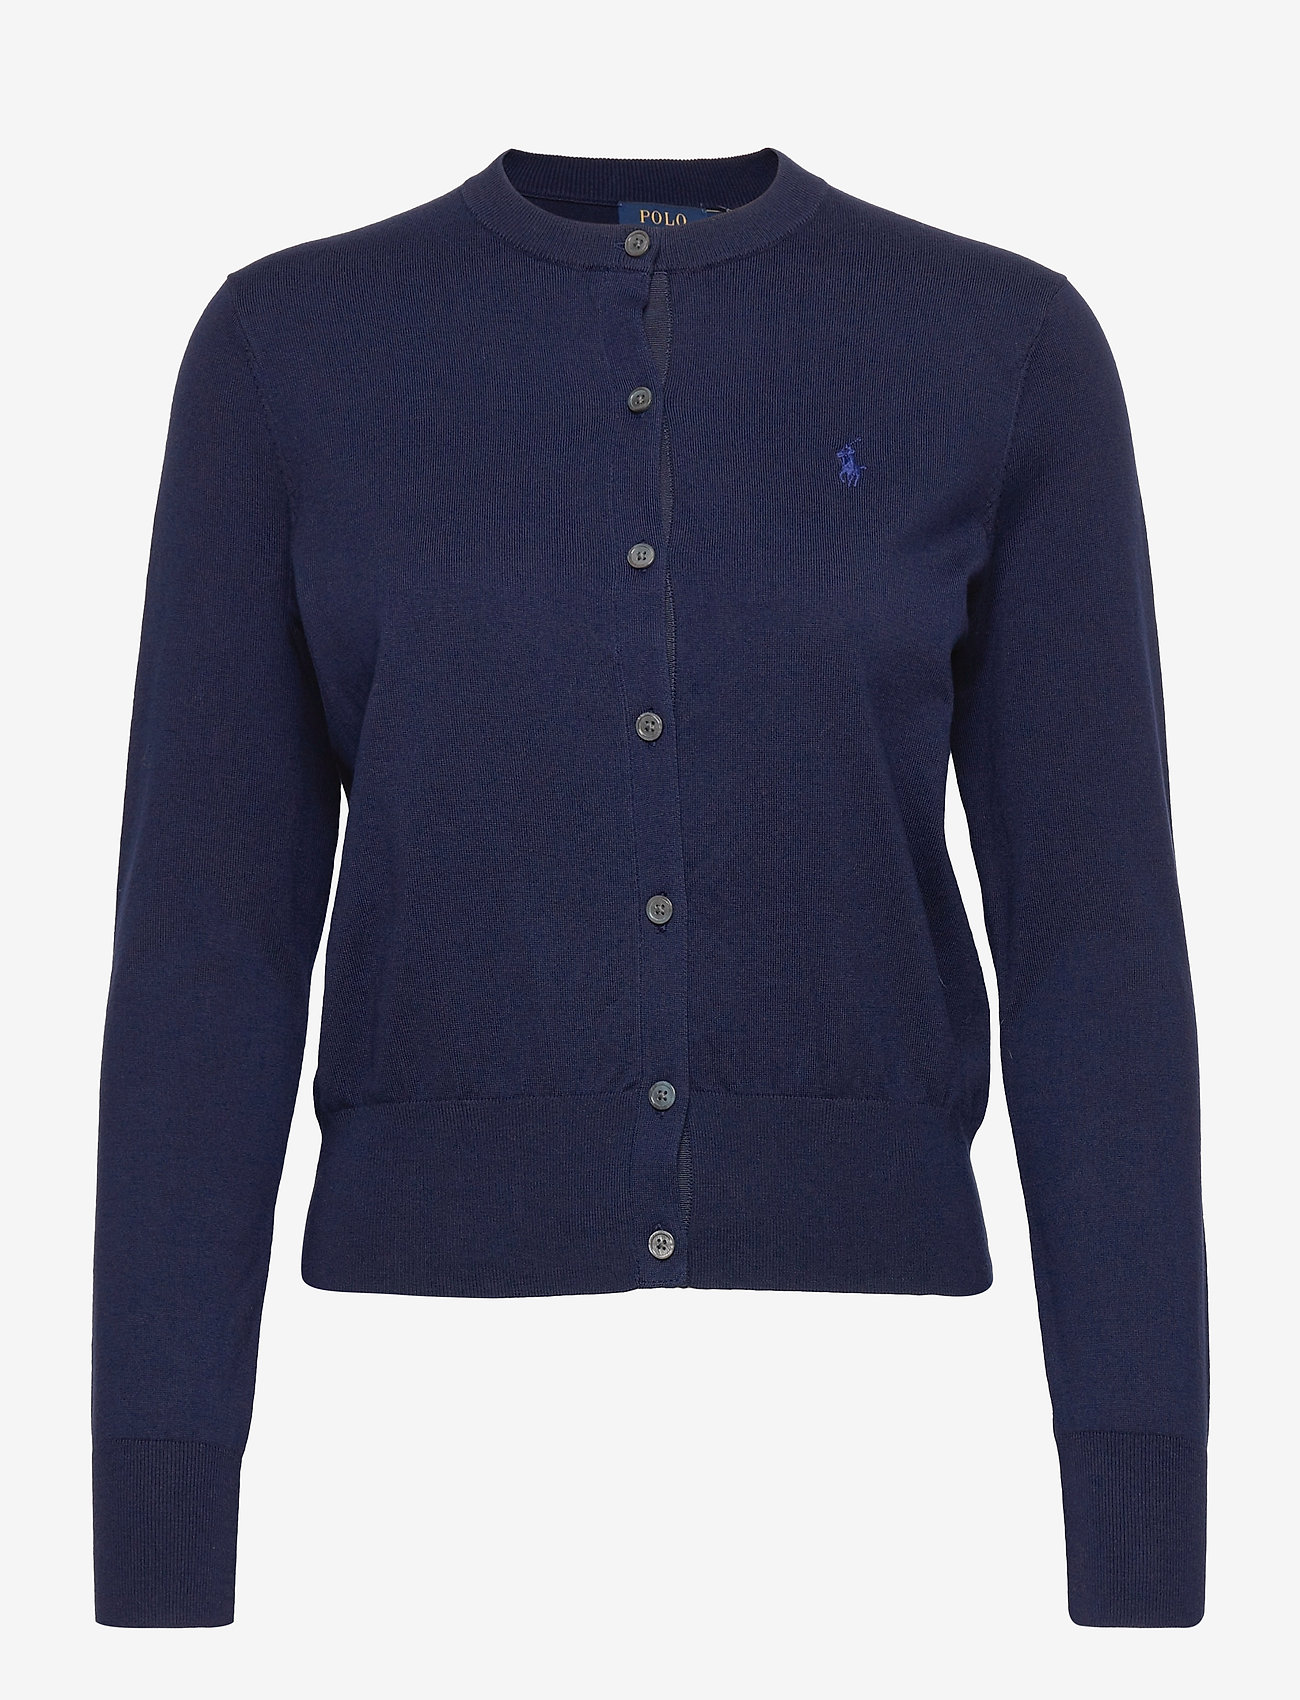 Polo Ralph Lauren - Cotton Cardigan - cardigans - bright navy - 0